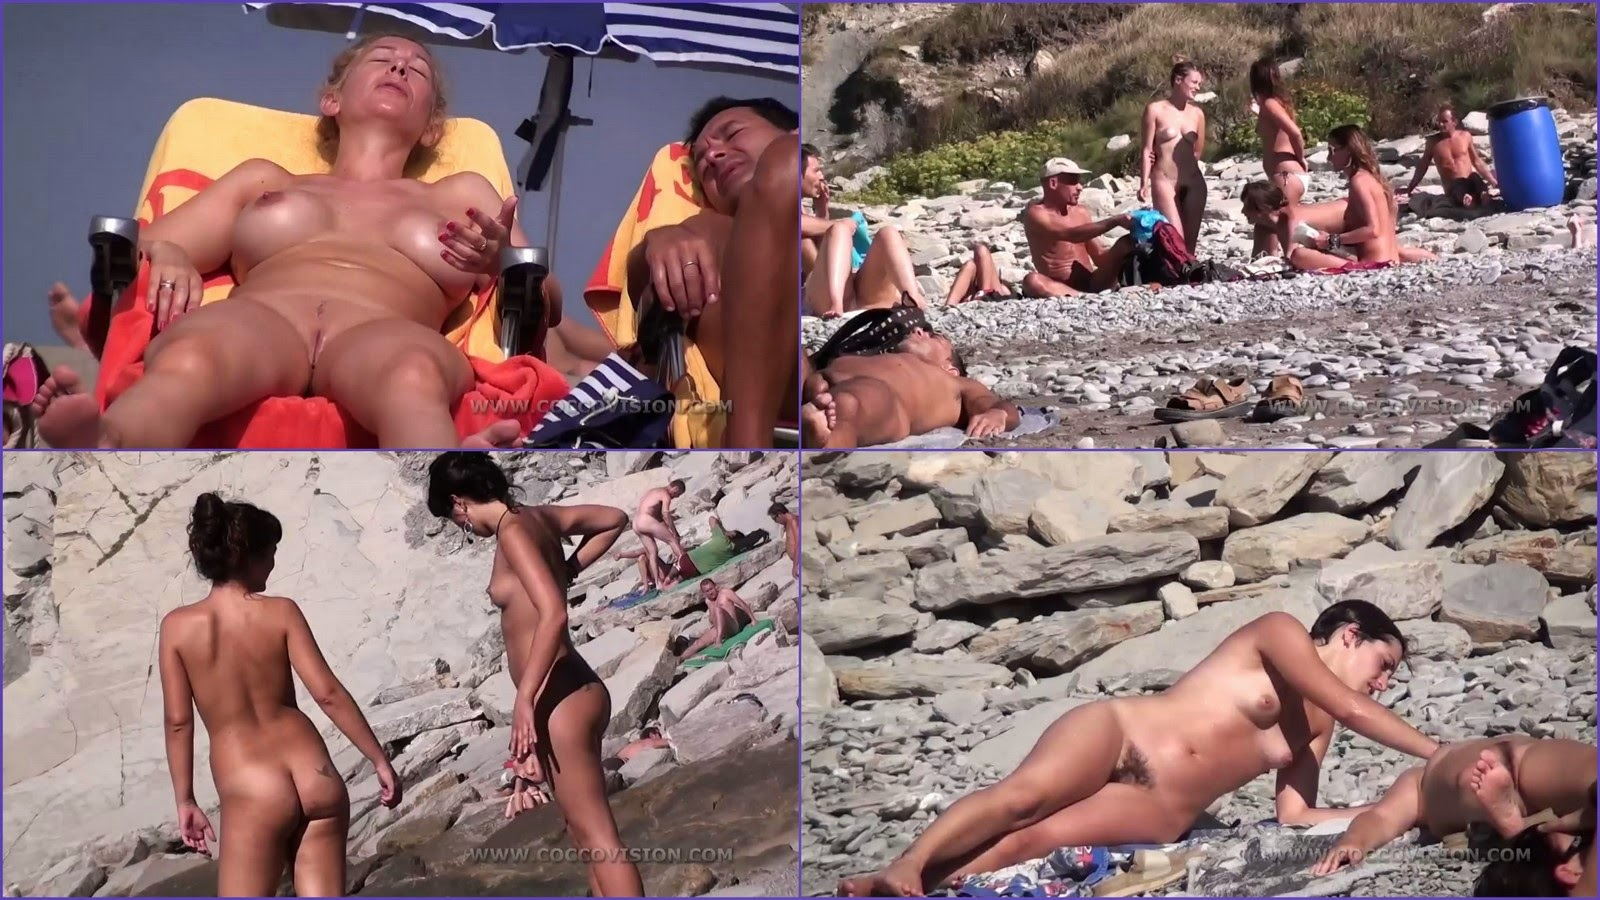 Young nudist video clips